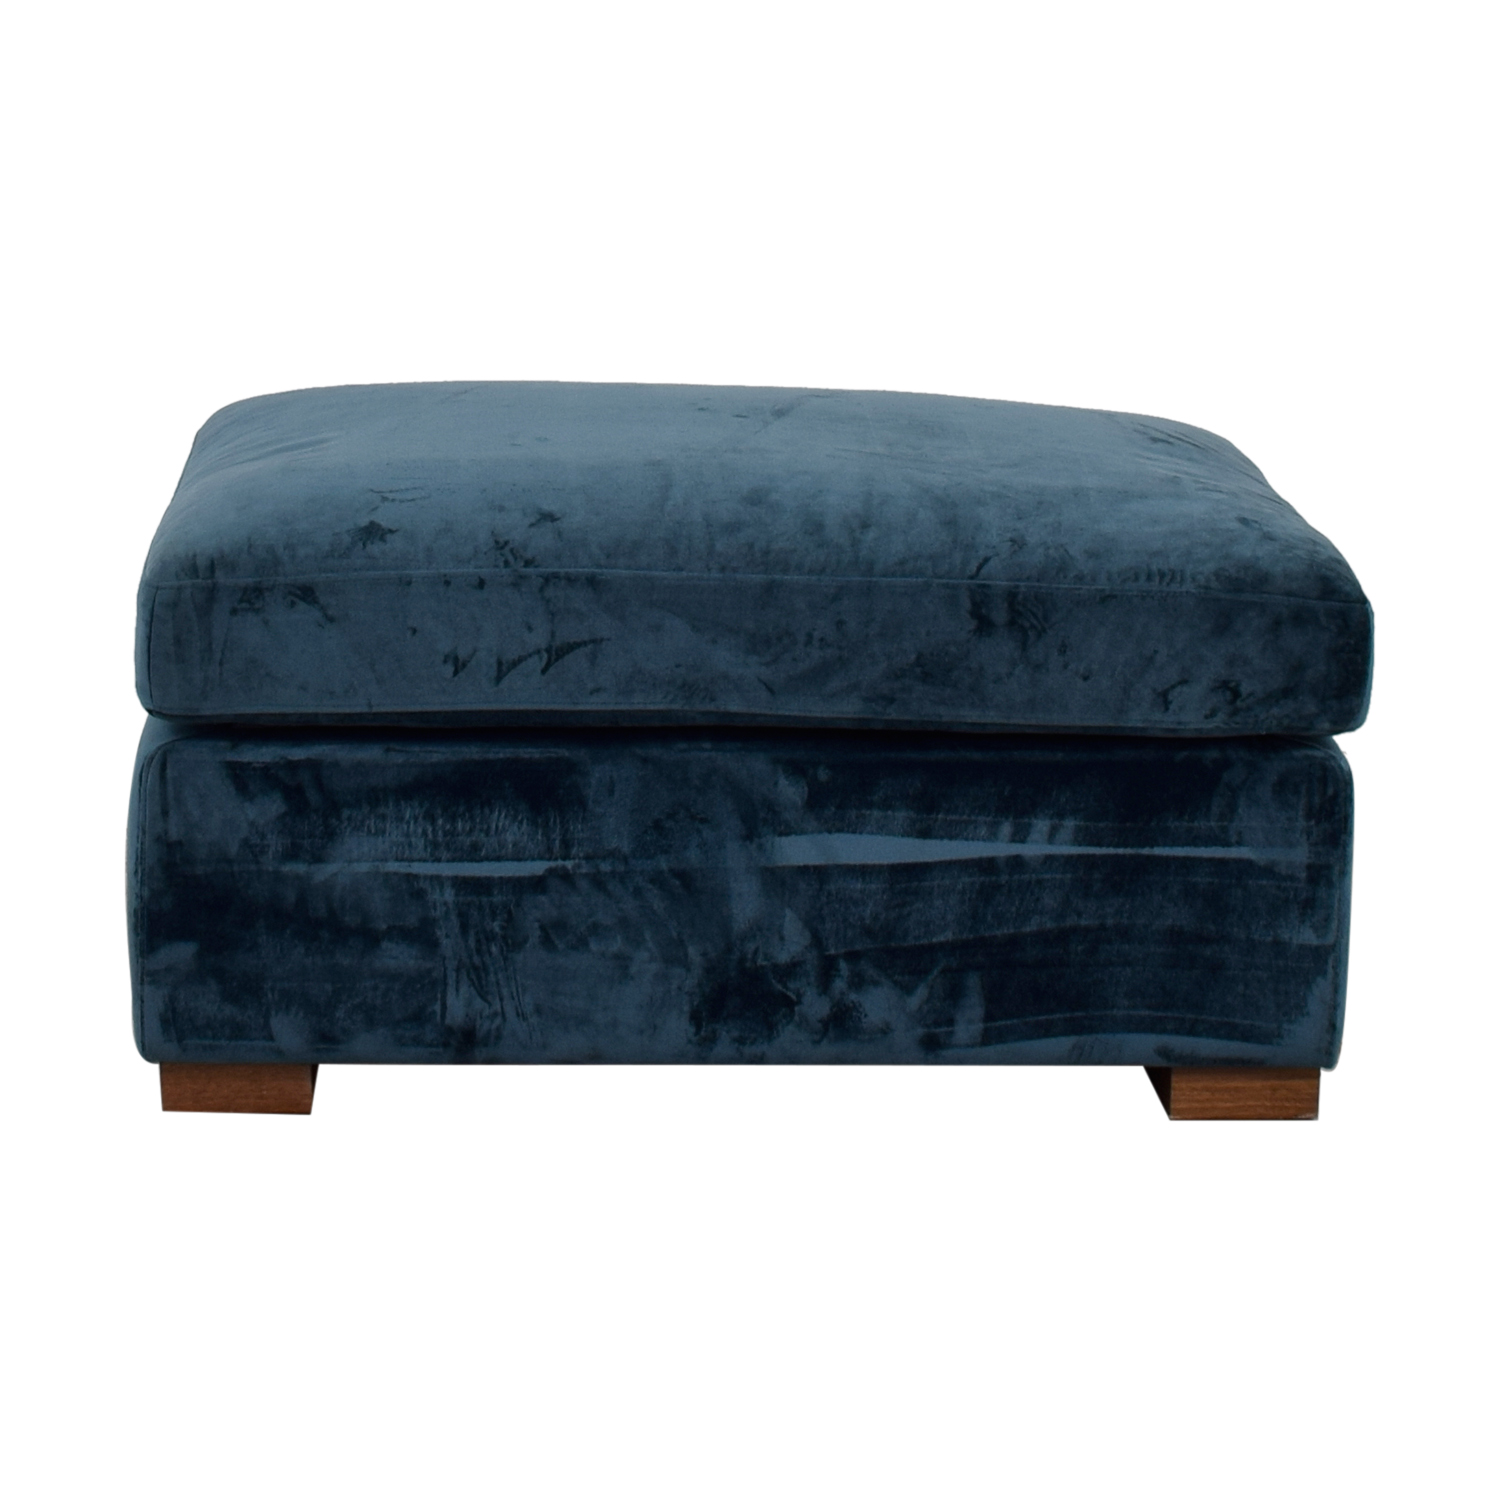 Charly Sapphire Ottoman used